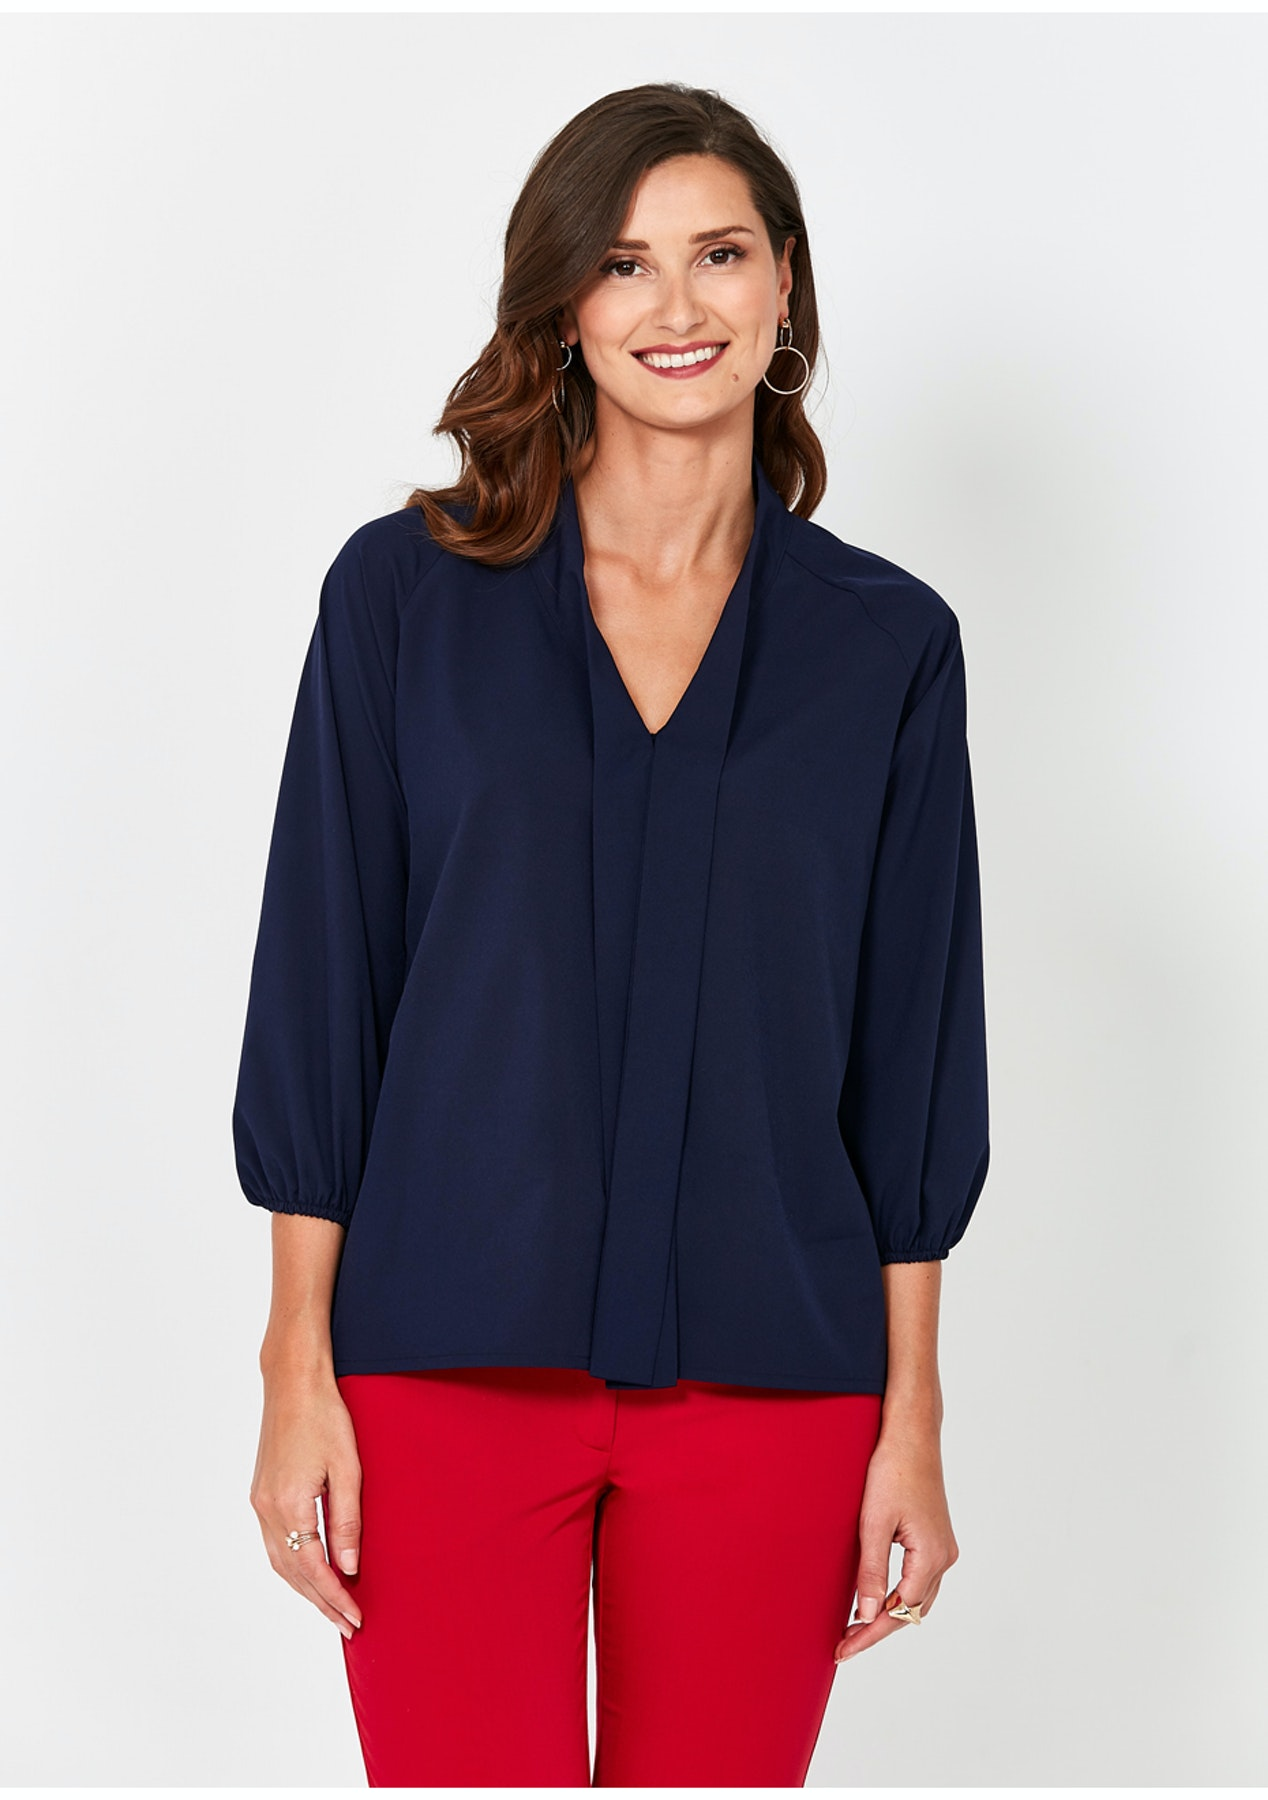 79e2a1e6f1dbec Zocha - Blouse - Navyblue - Day to Night Looks Up to 70% Off - Onceit